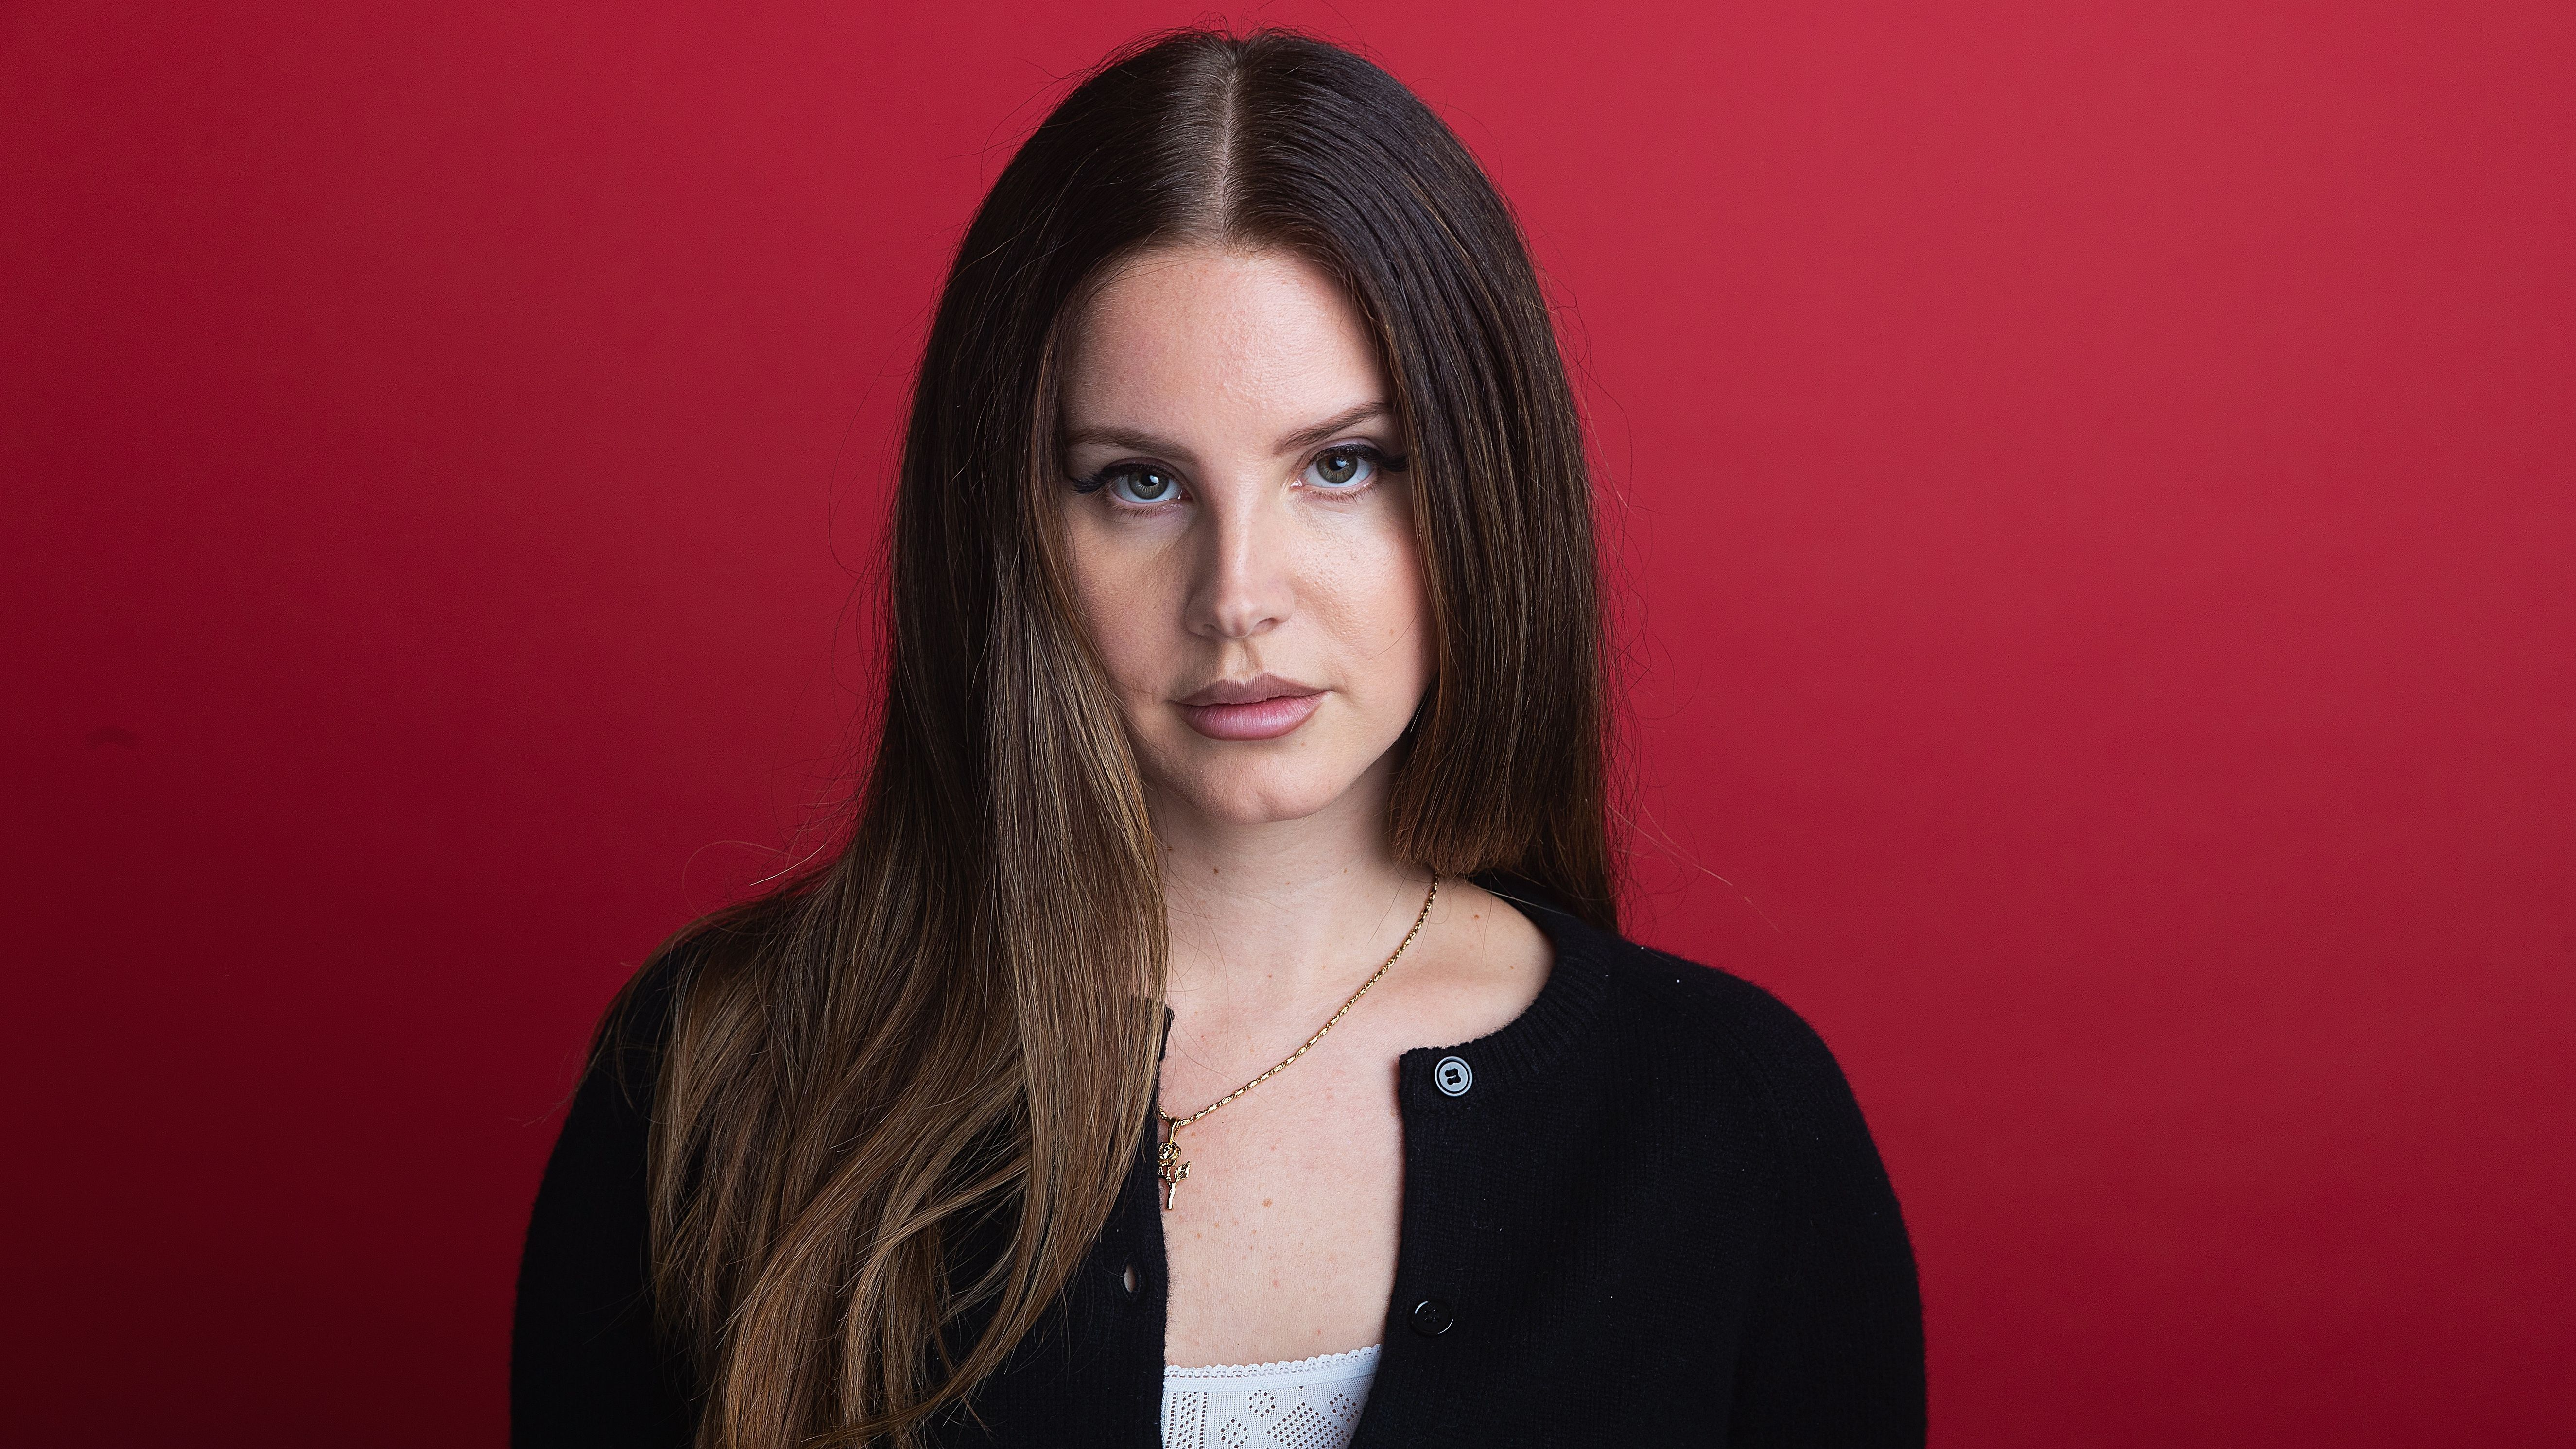 Lana Del Rey Says Wear A Mask With Interview Cover: 'Just Not, You Know, This One'